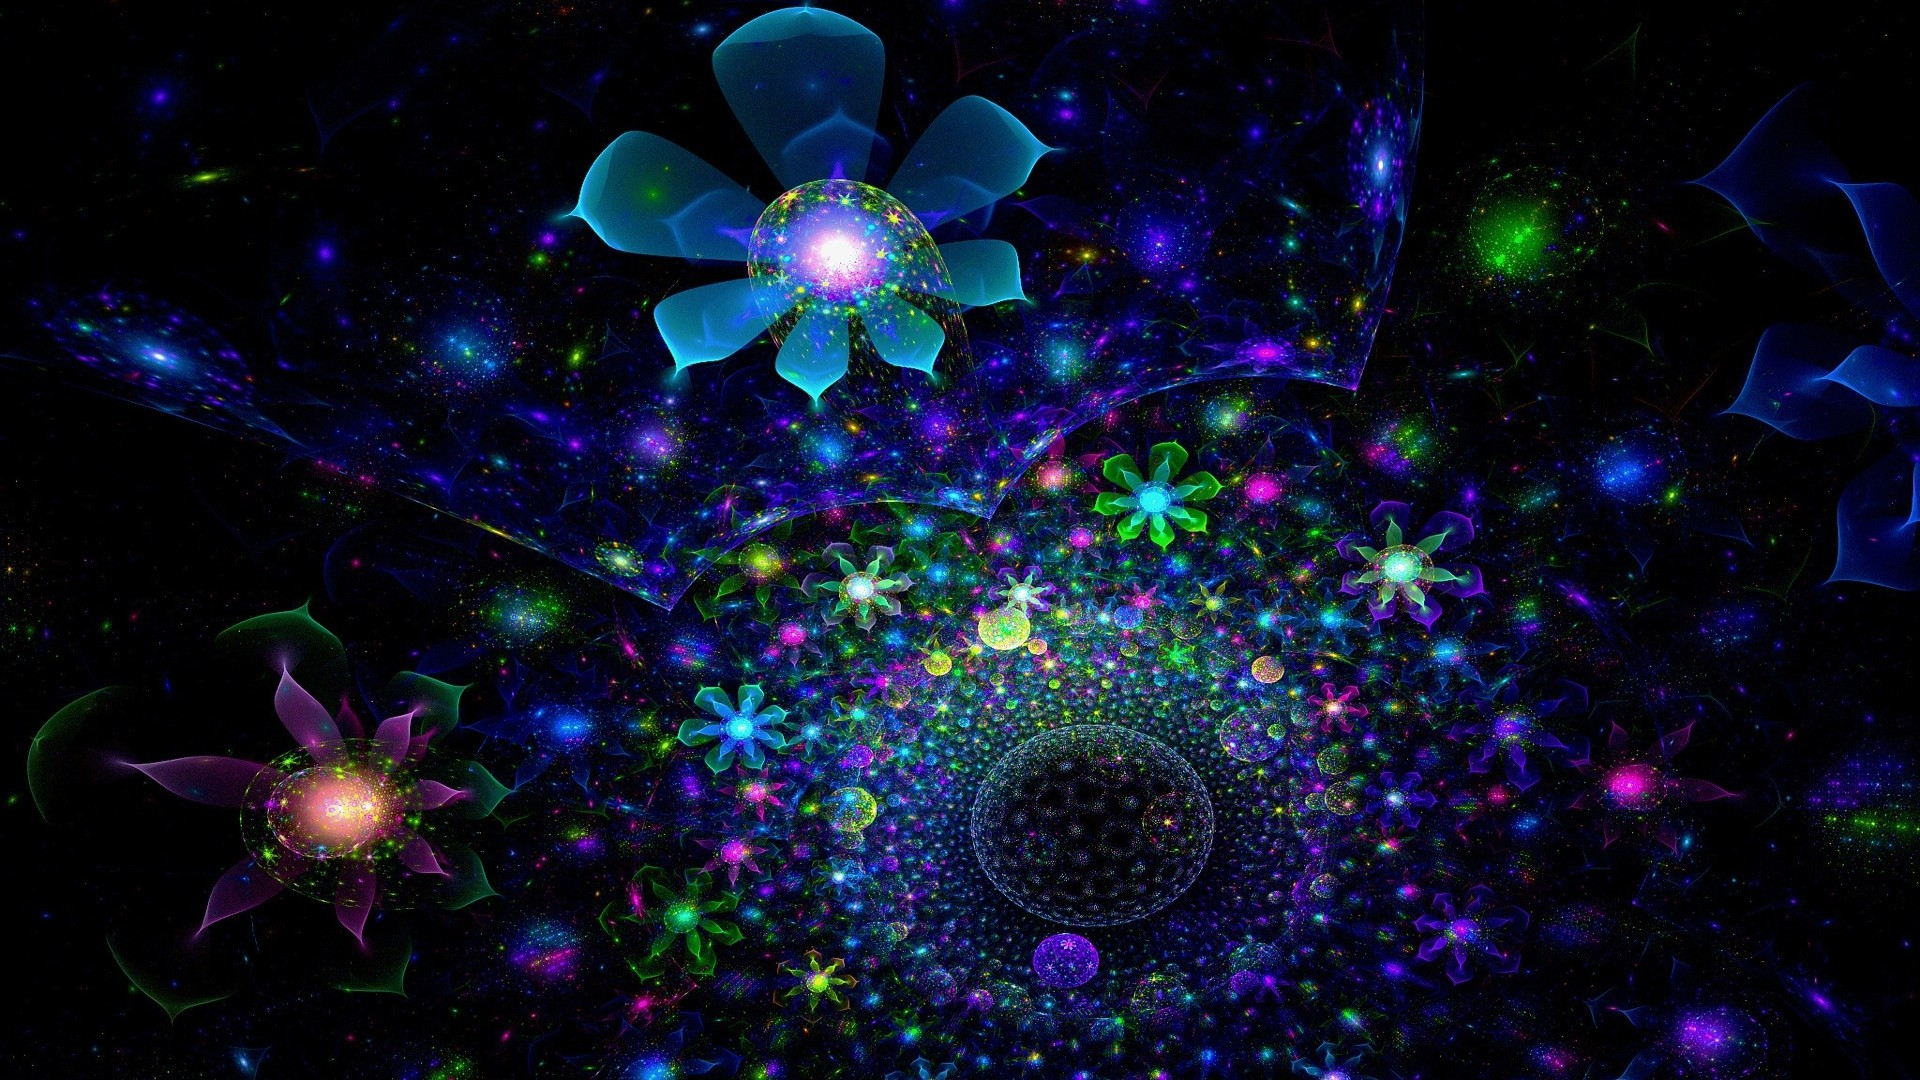 HD Fractals Wallpapers p 1920×1080 Fractal Wallpapers 1080p (36 Wallpapers)  | Adorable